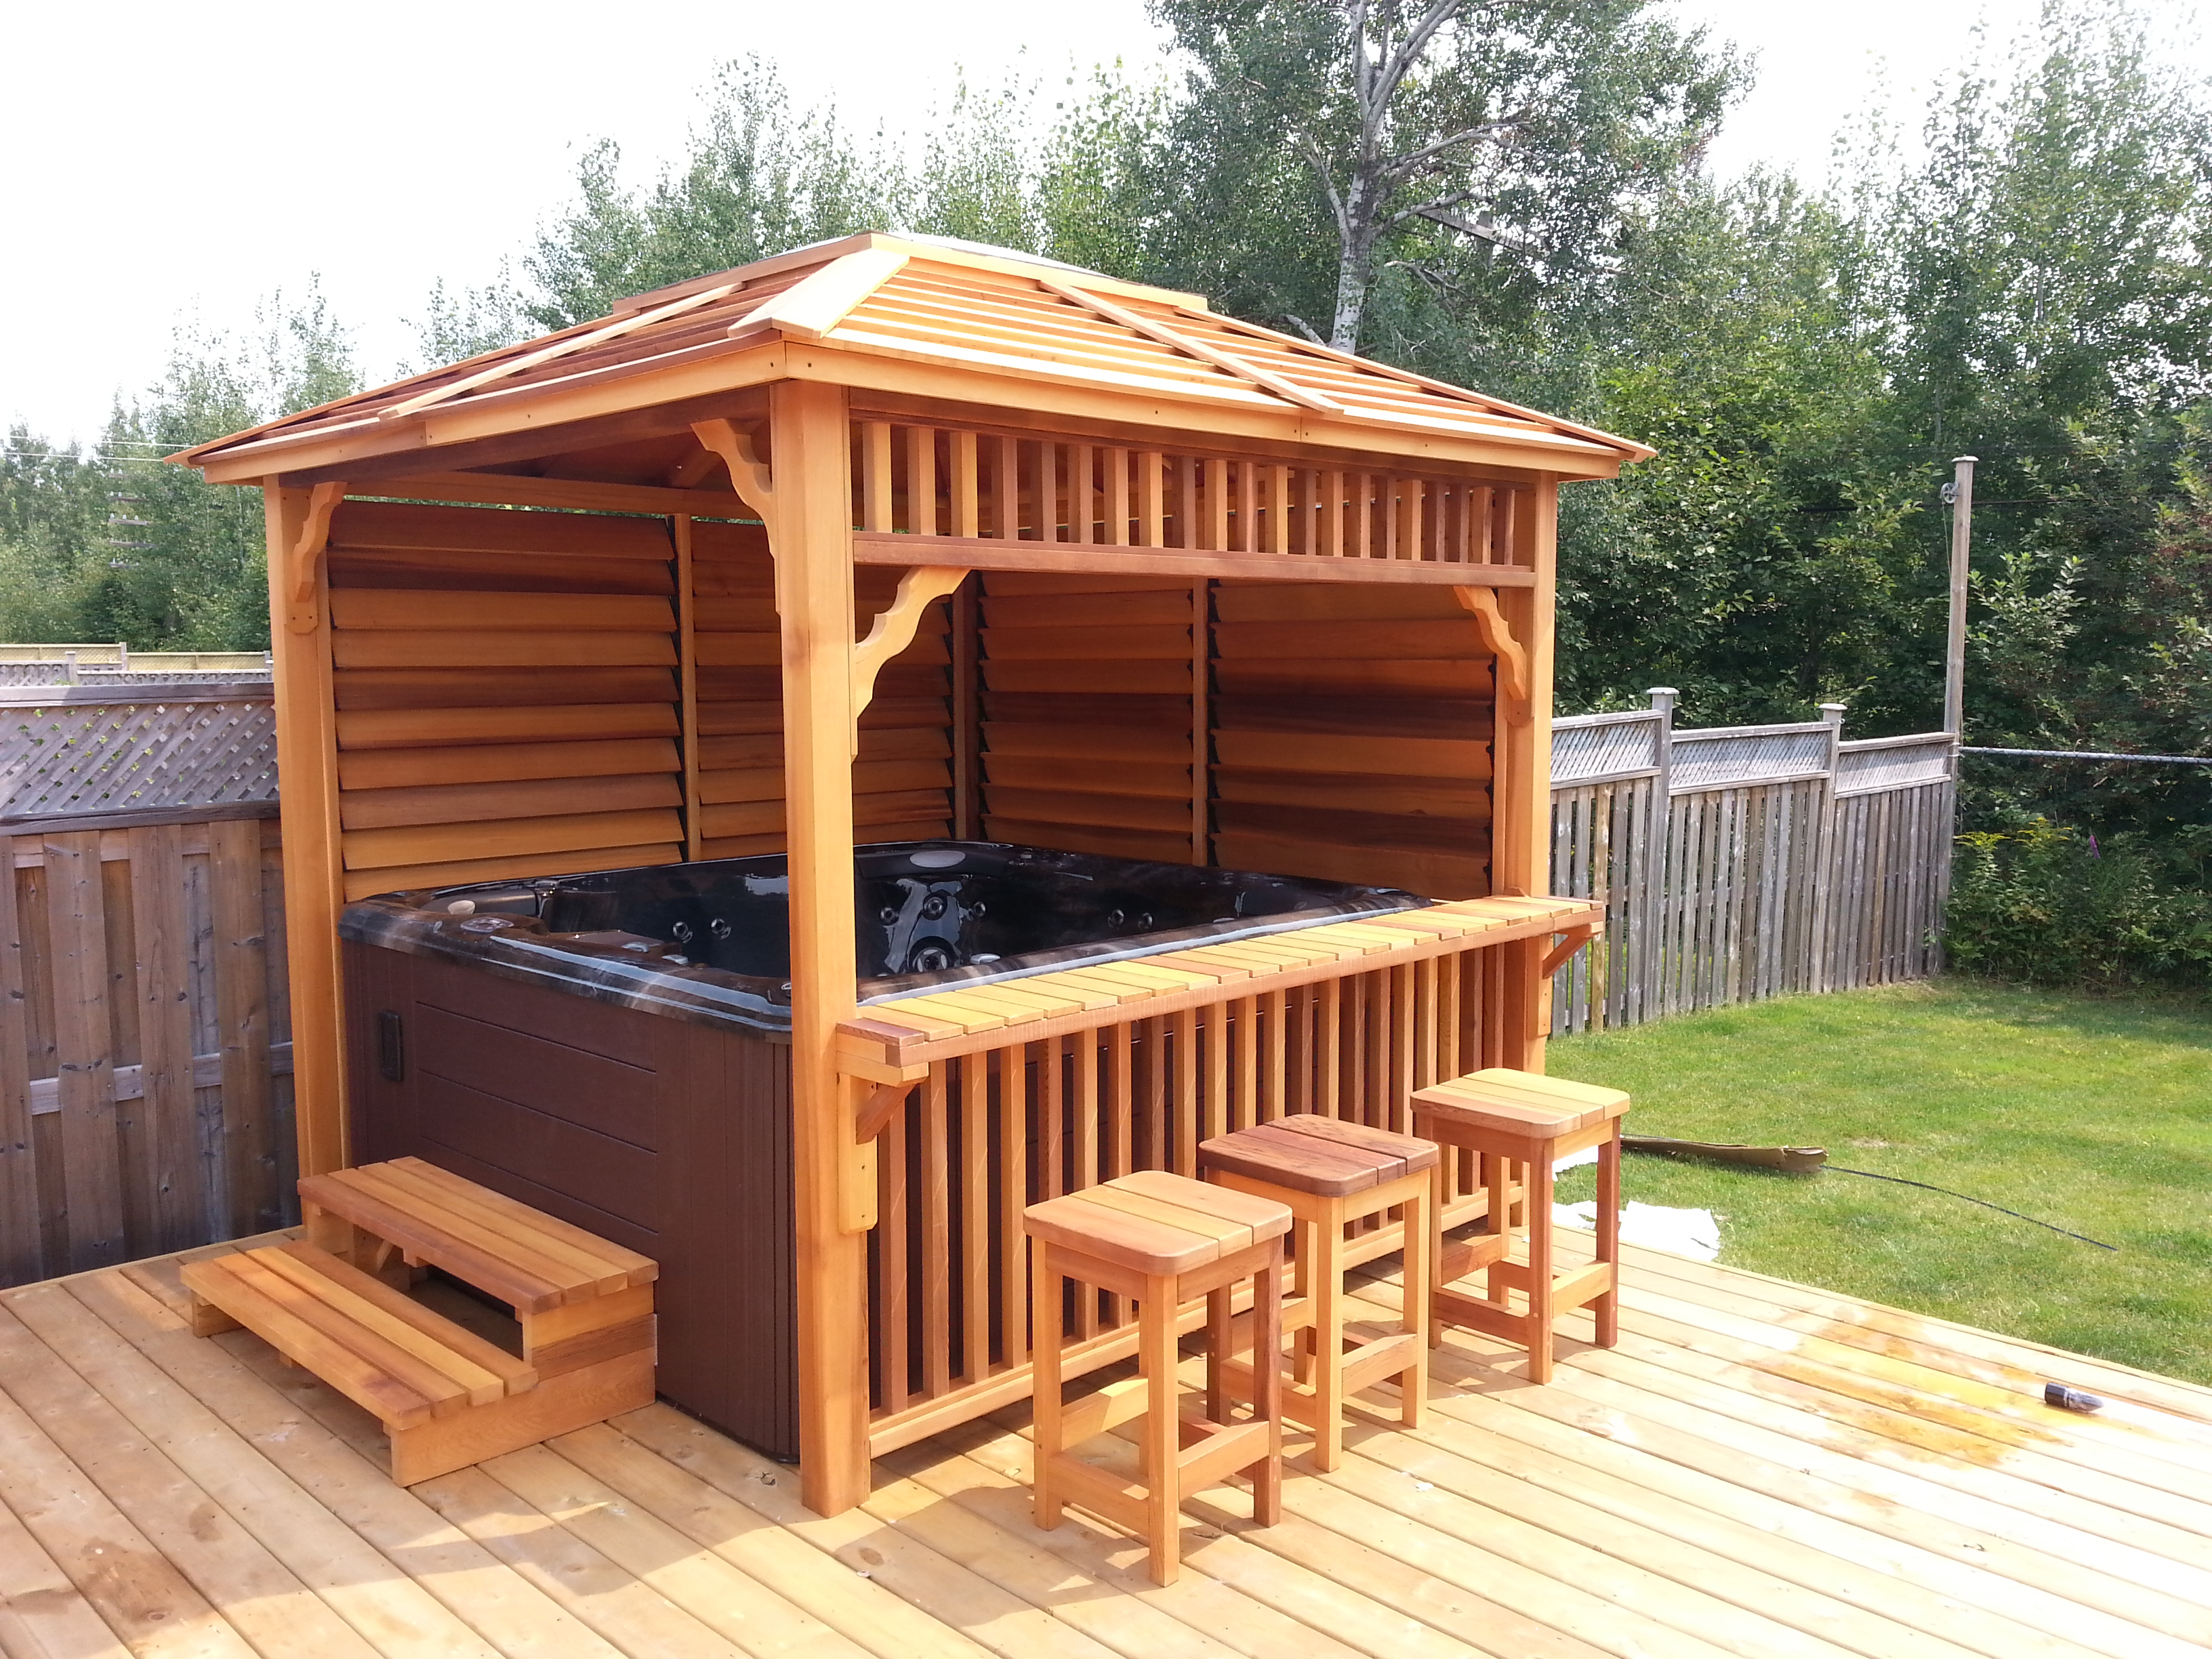 Echoe Gazebo 171 Barrel Saunas Gazebos And Log Furniture